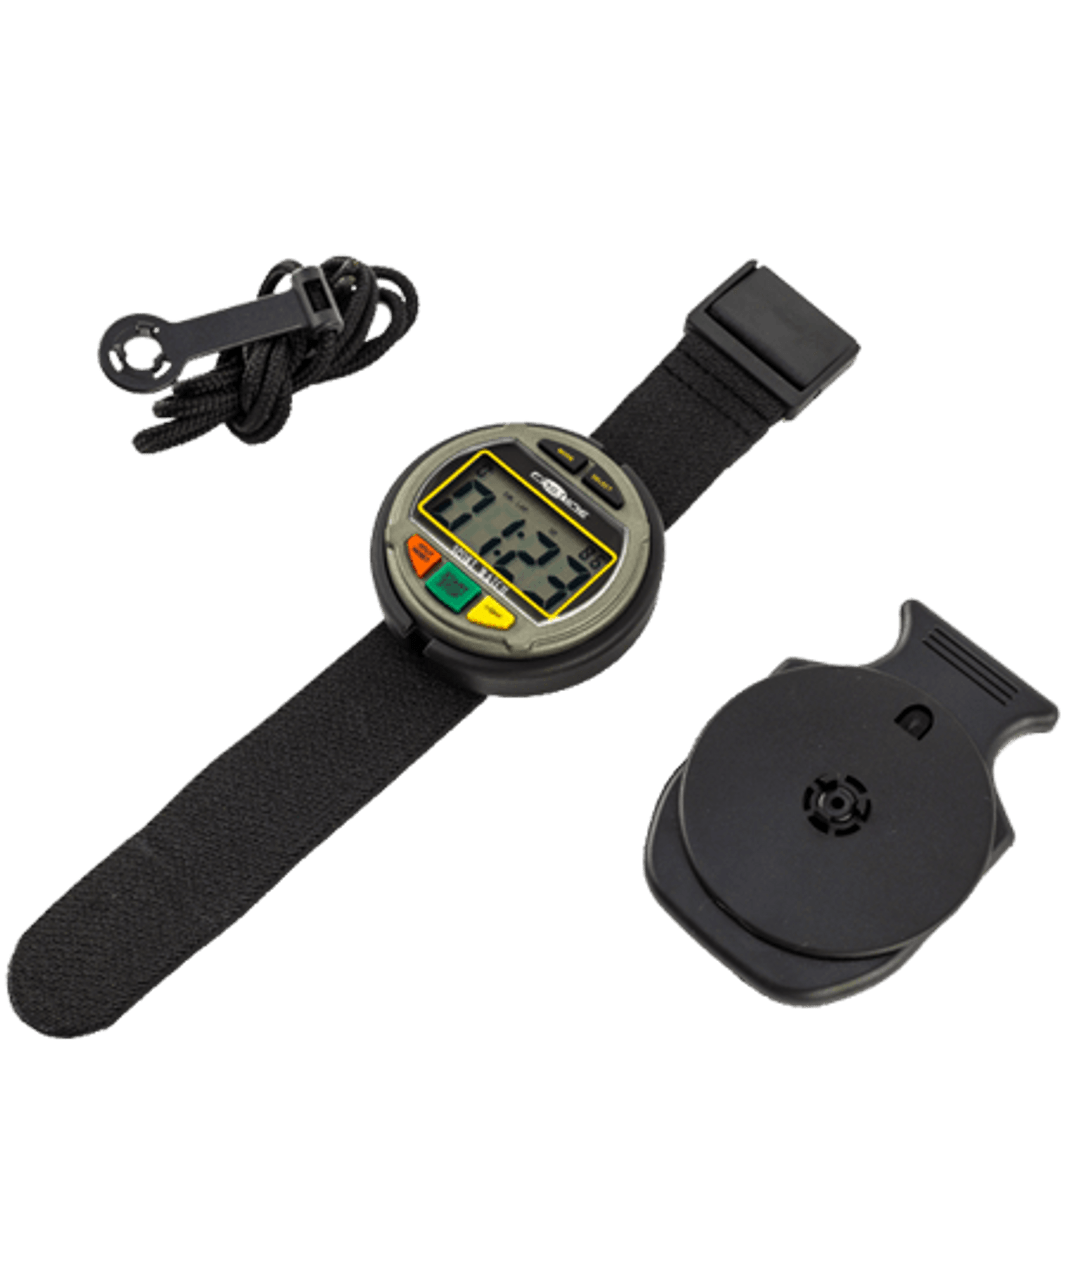 DOn Barrow Fastime AST11 Rally AST 11 Stopwatches 24 hr Digital Chronograph, Big Digit Stopwatch, Cumulative or Split, Count Up Count Down, Velcro Wriststrap, Great for Regularity Sections